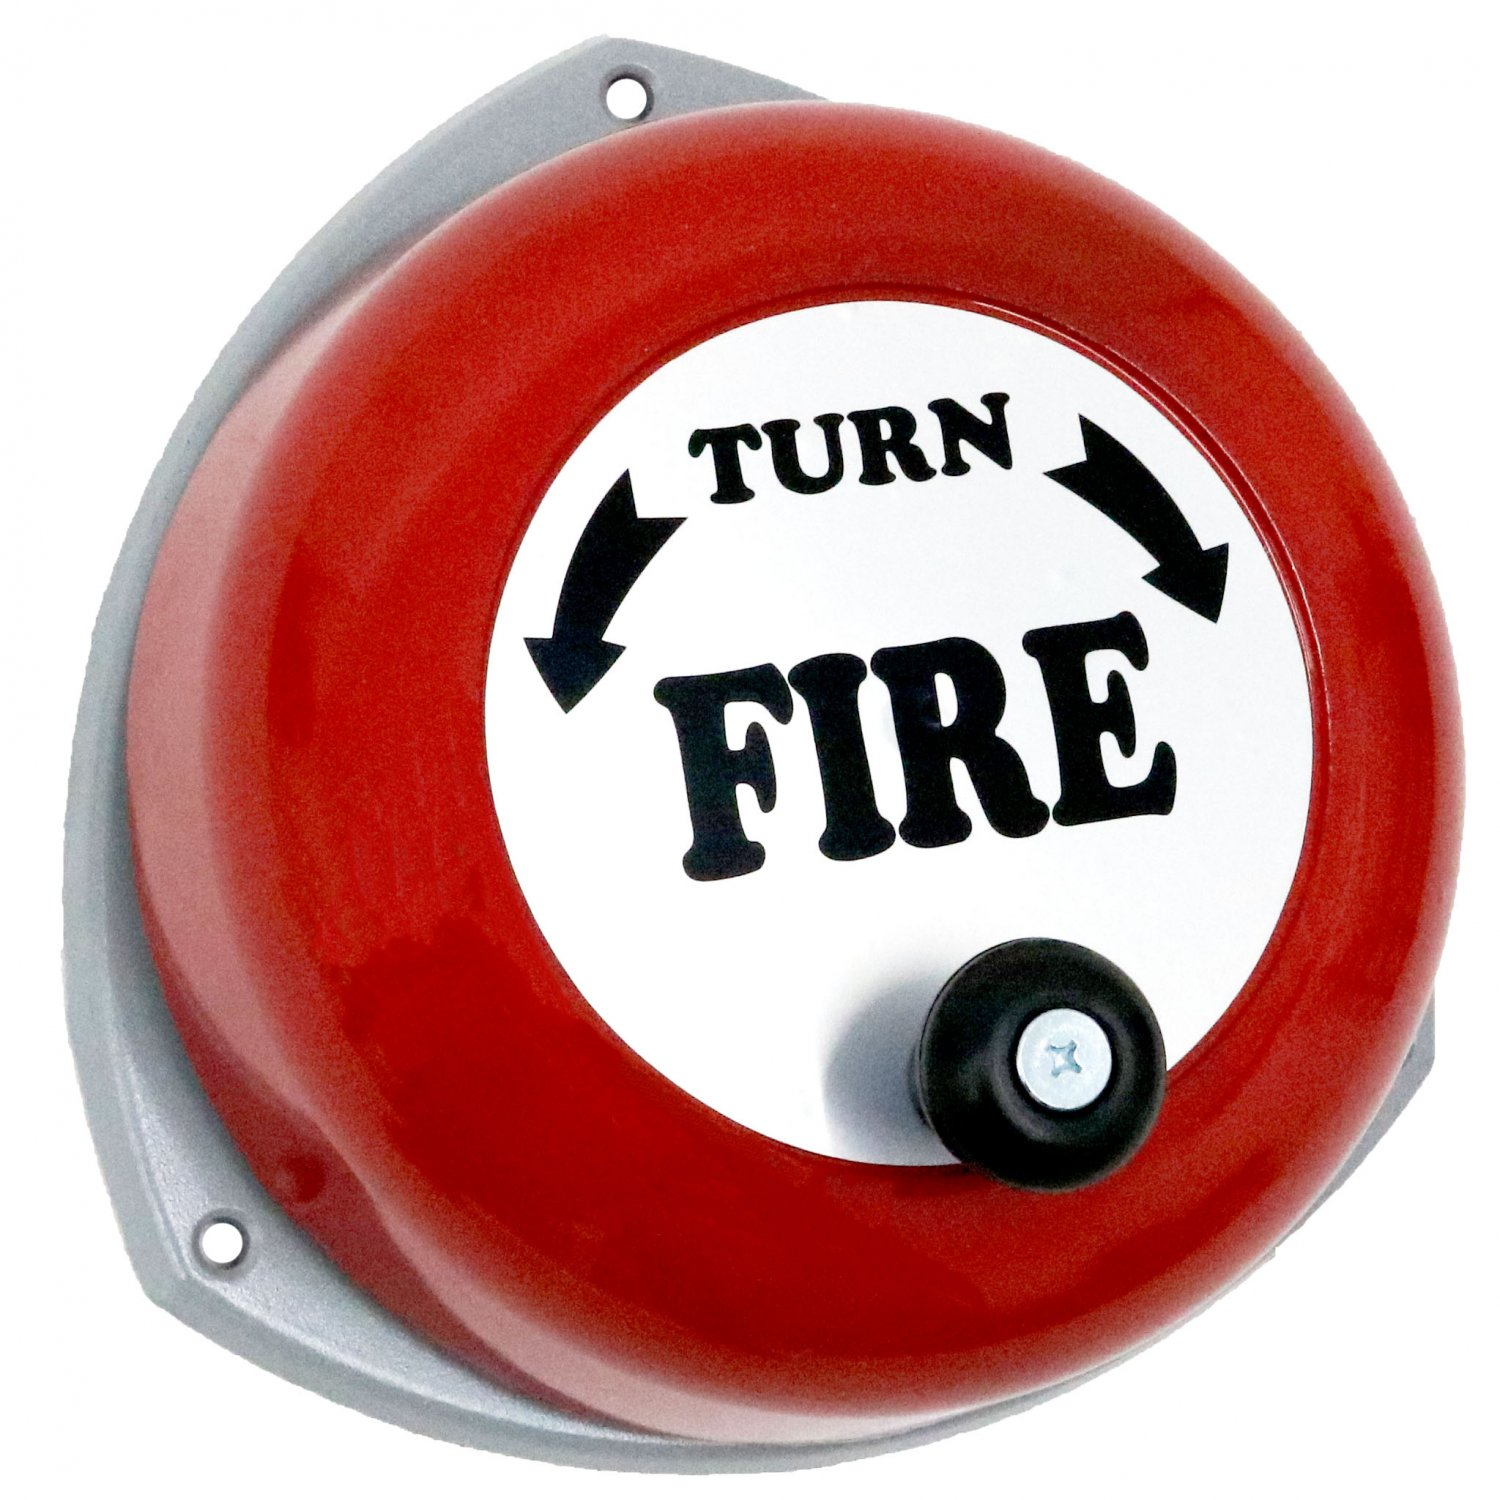 Bells Fire Safety : Rotary hand fire safety bell manual alarm £ oypla